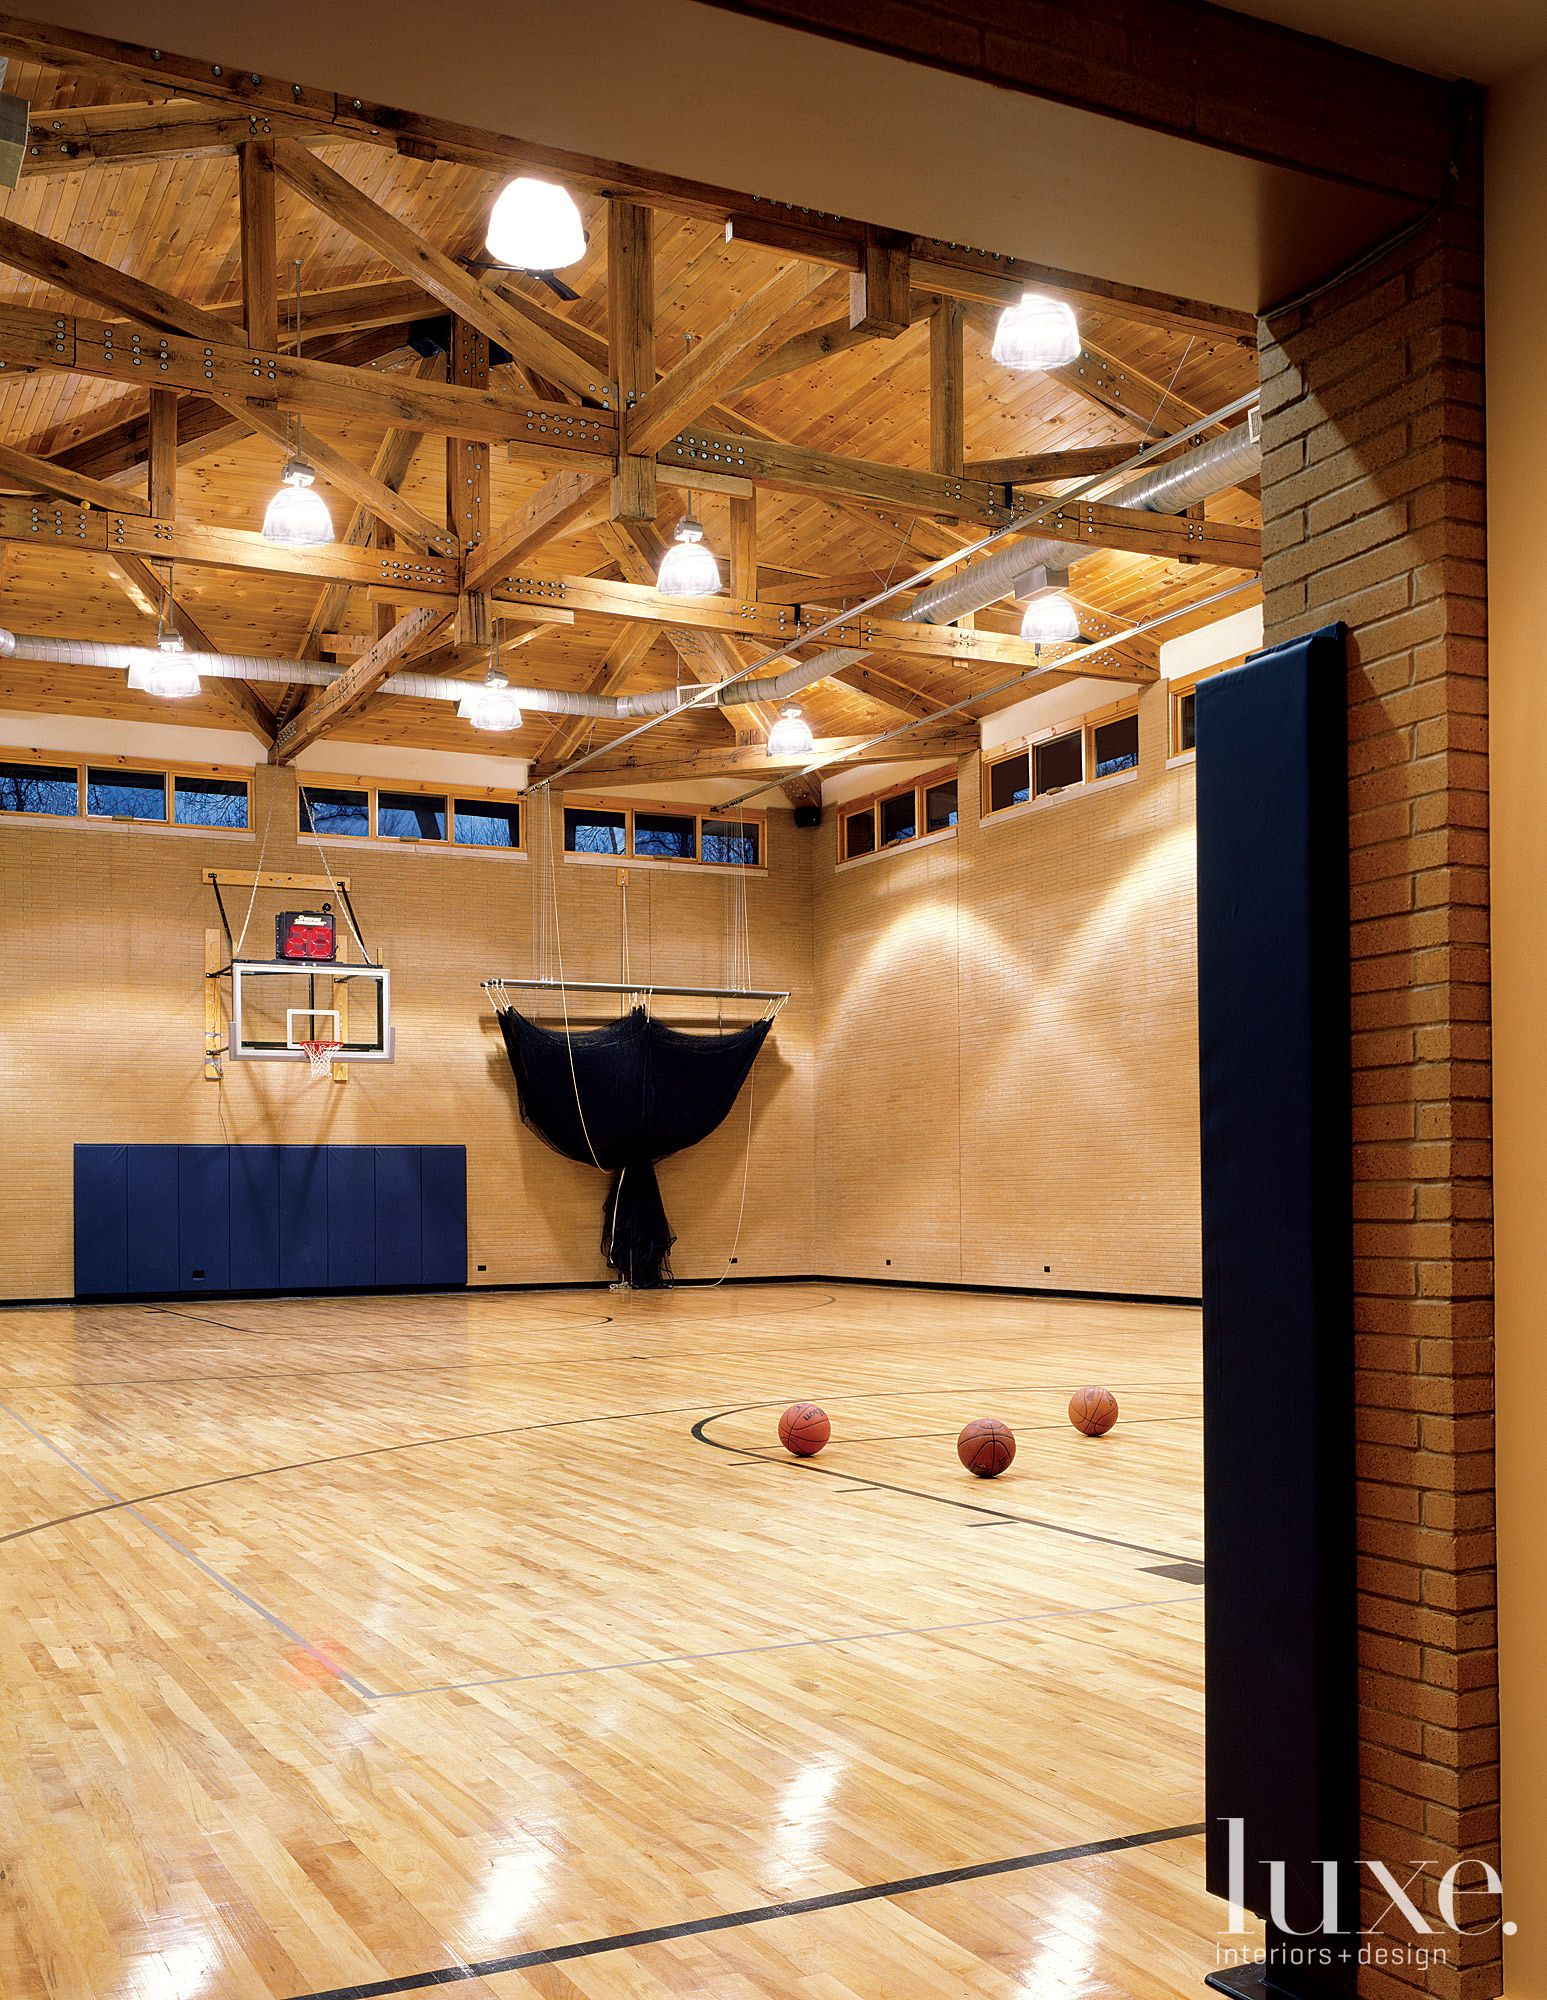 Luxesource Luxe Magazine The Luxury Home Redefined Home Basketball Court Basketball Room Basketball Court